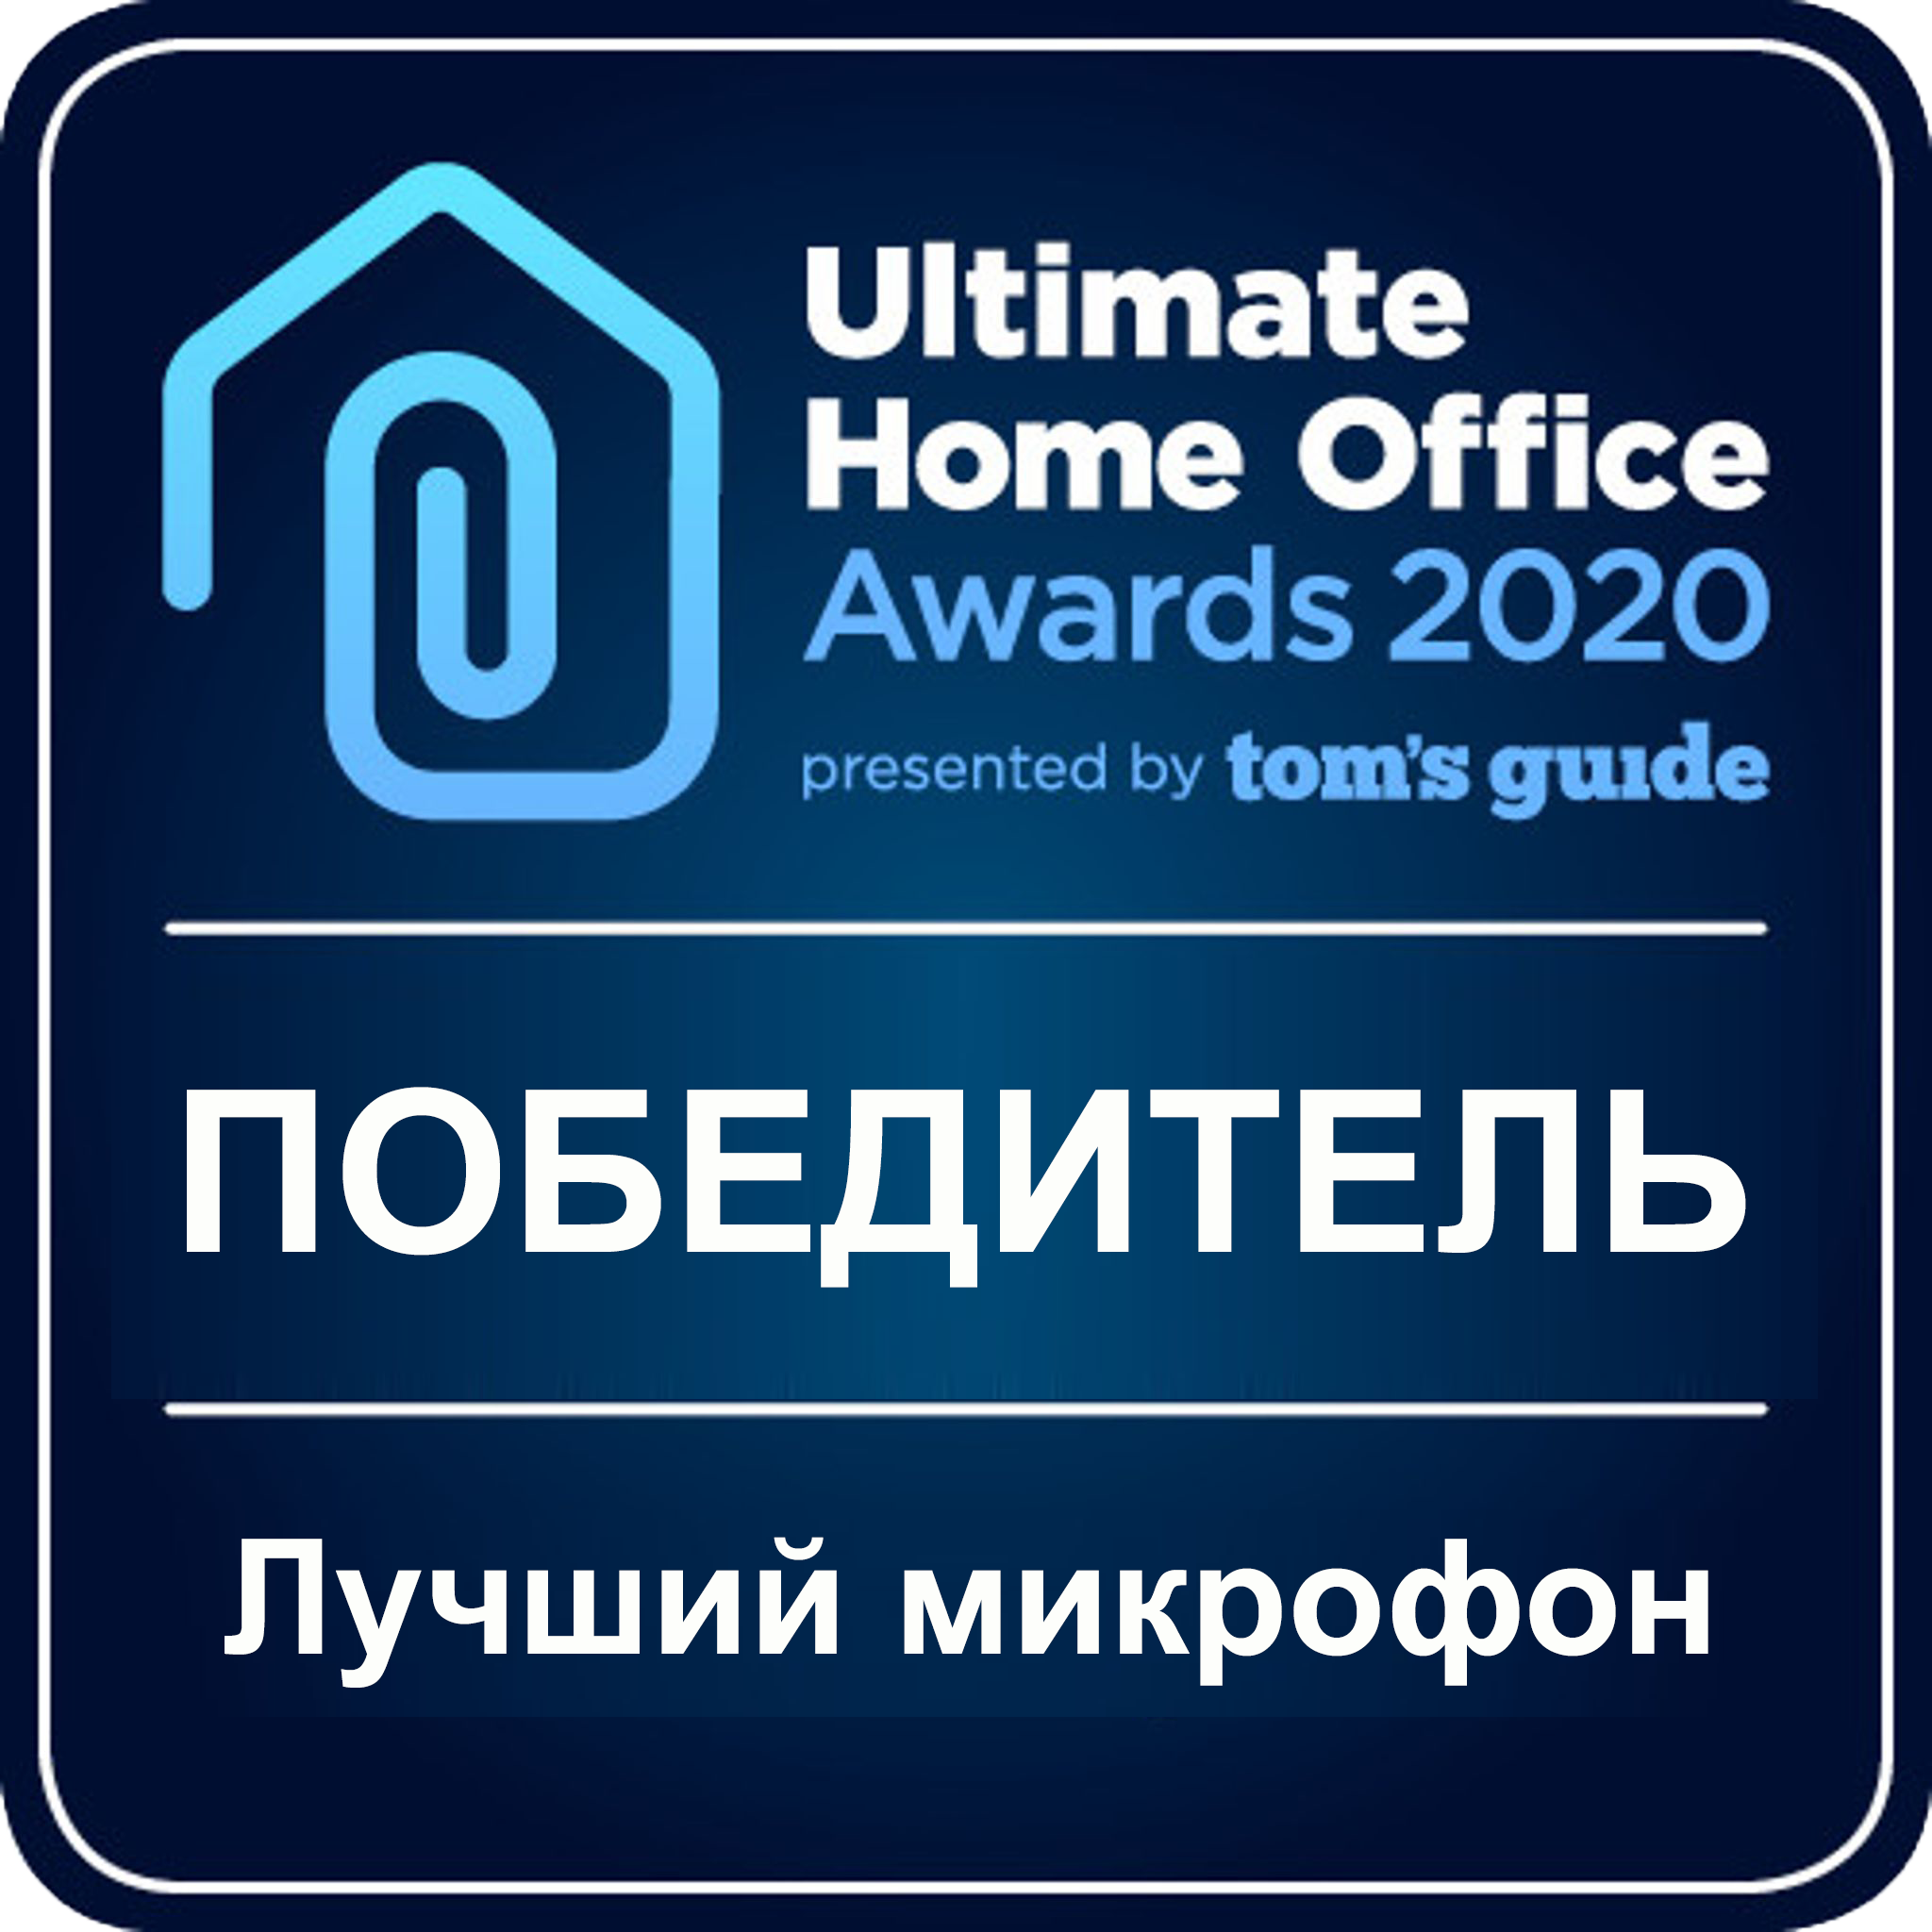 Ultimate Home Office Award 2020 best microphone badge